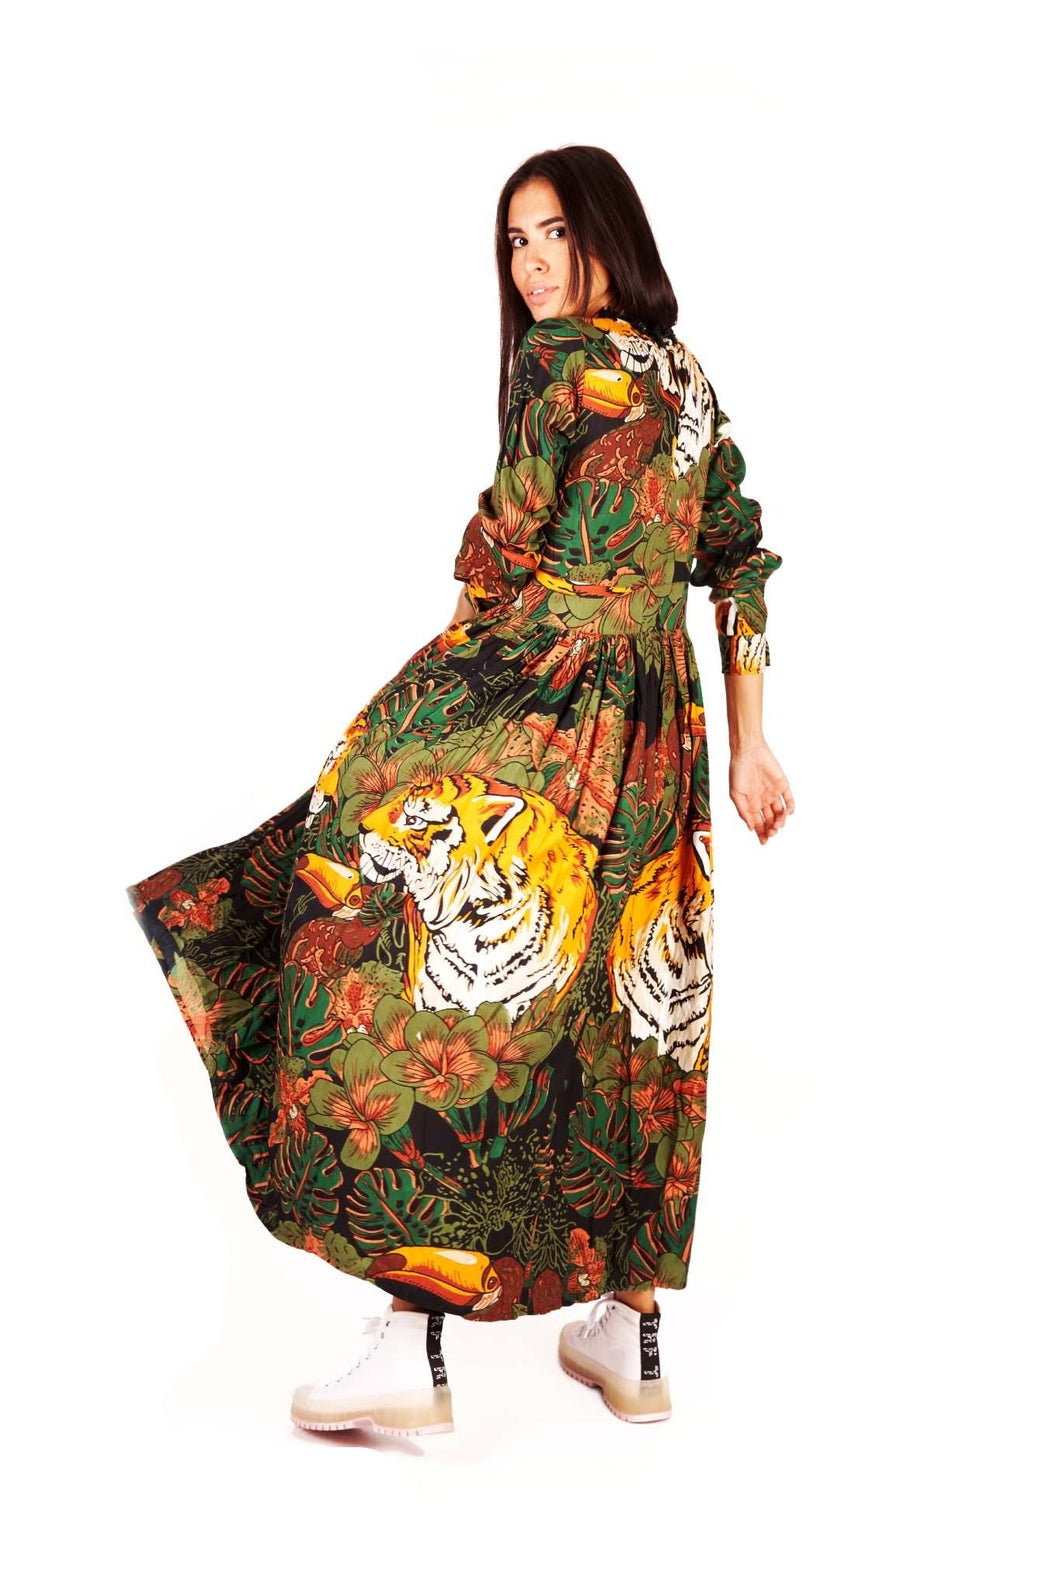 Mya Deep Safari dress